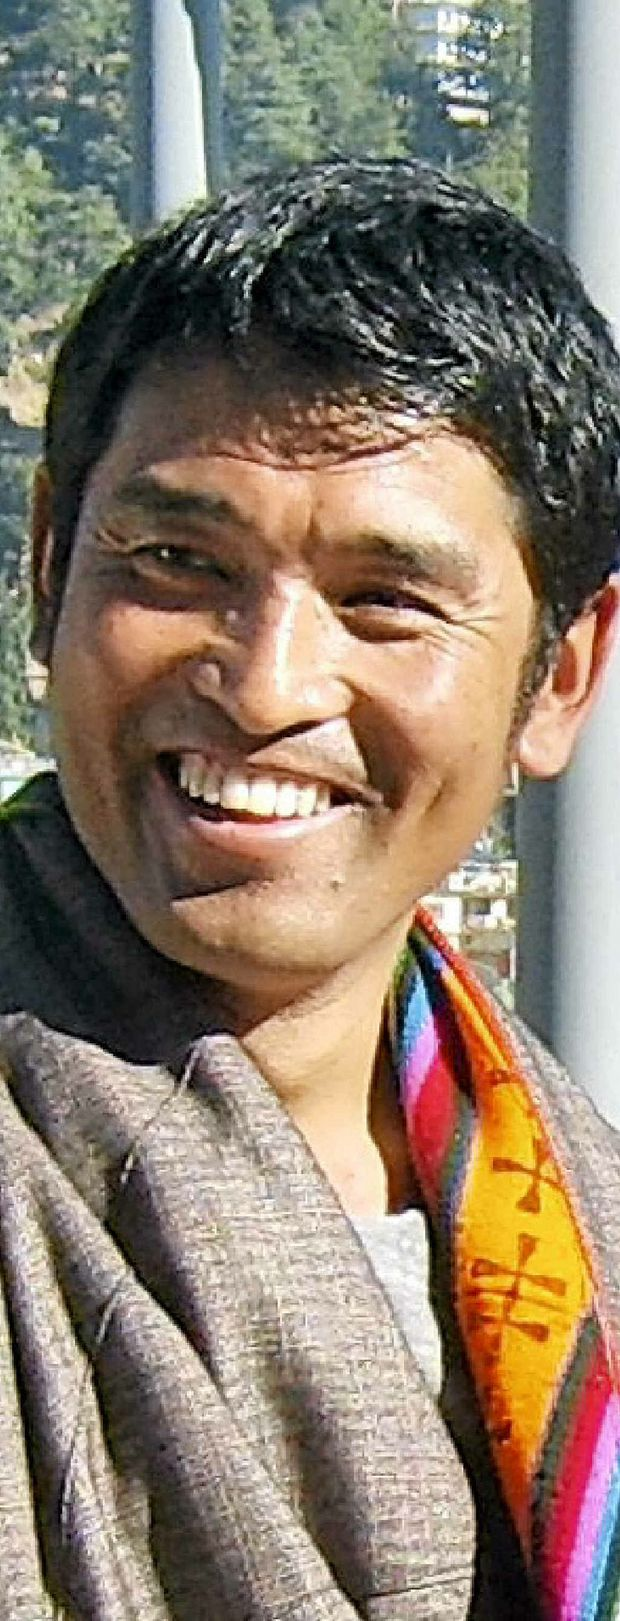 SEEKING FREEDOM: Lhamo Kyab has made a film of his life under the Chinese occupation of Tibet.